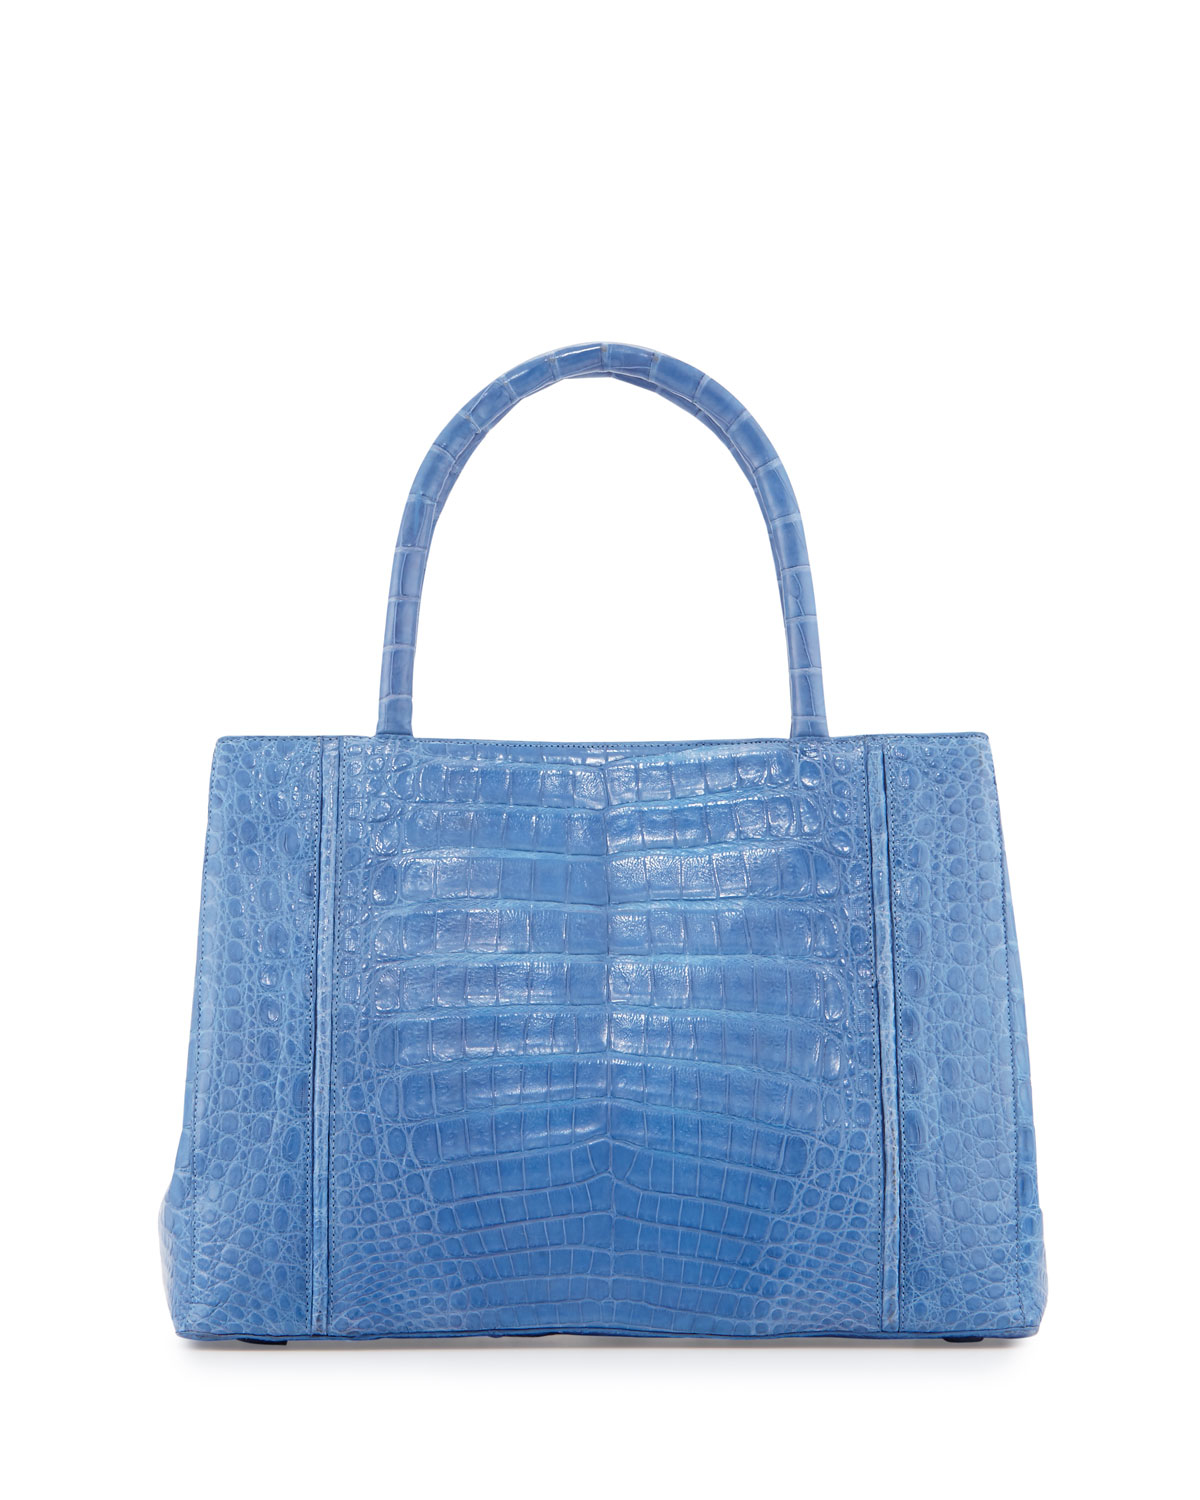 Nancy gonzalez small sectional crocodile tote bag in blue for Nancy gonzalez crocodile tote